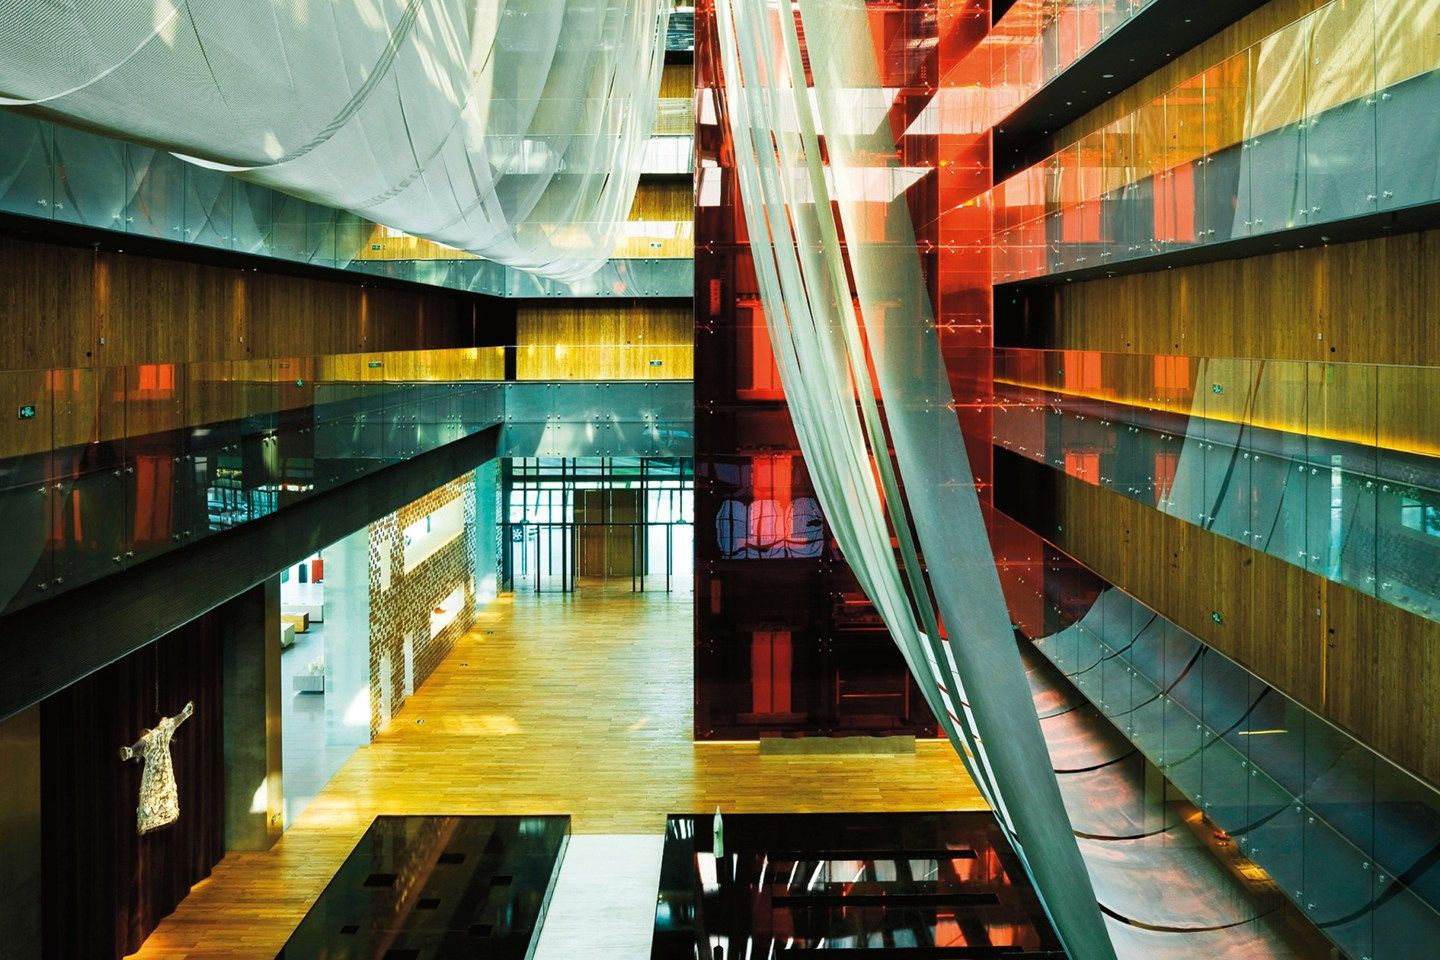 Pin by House of Paidia on Architecture & Interior Design